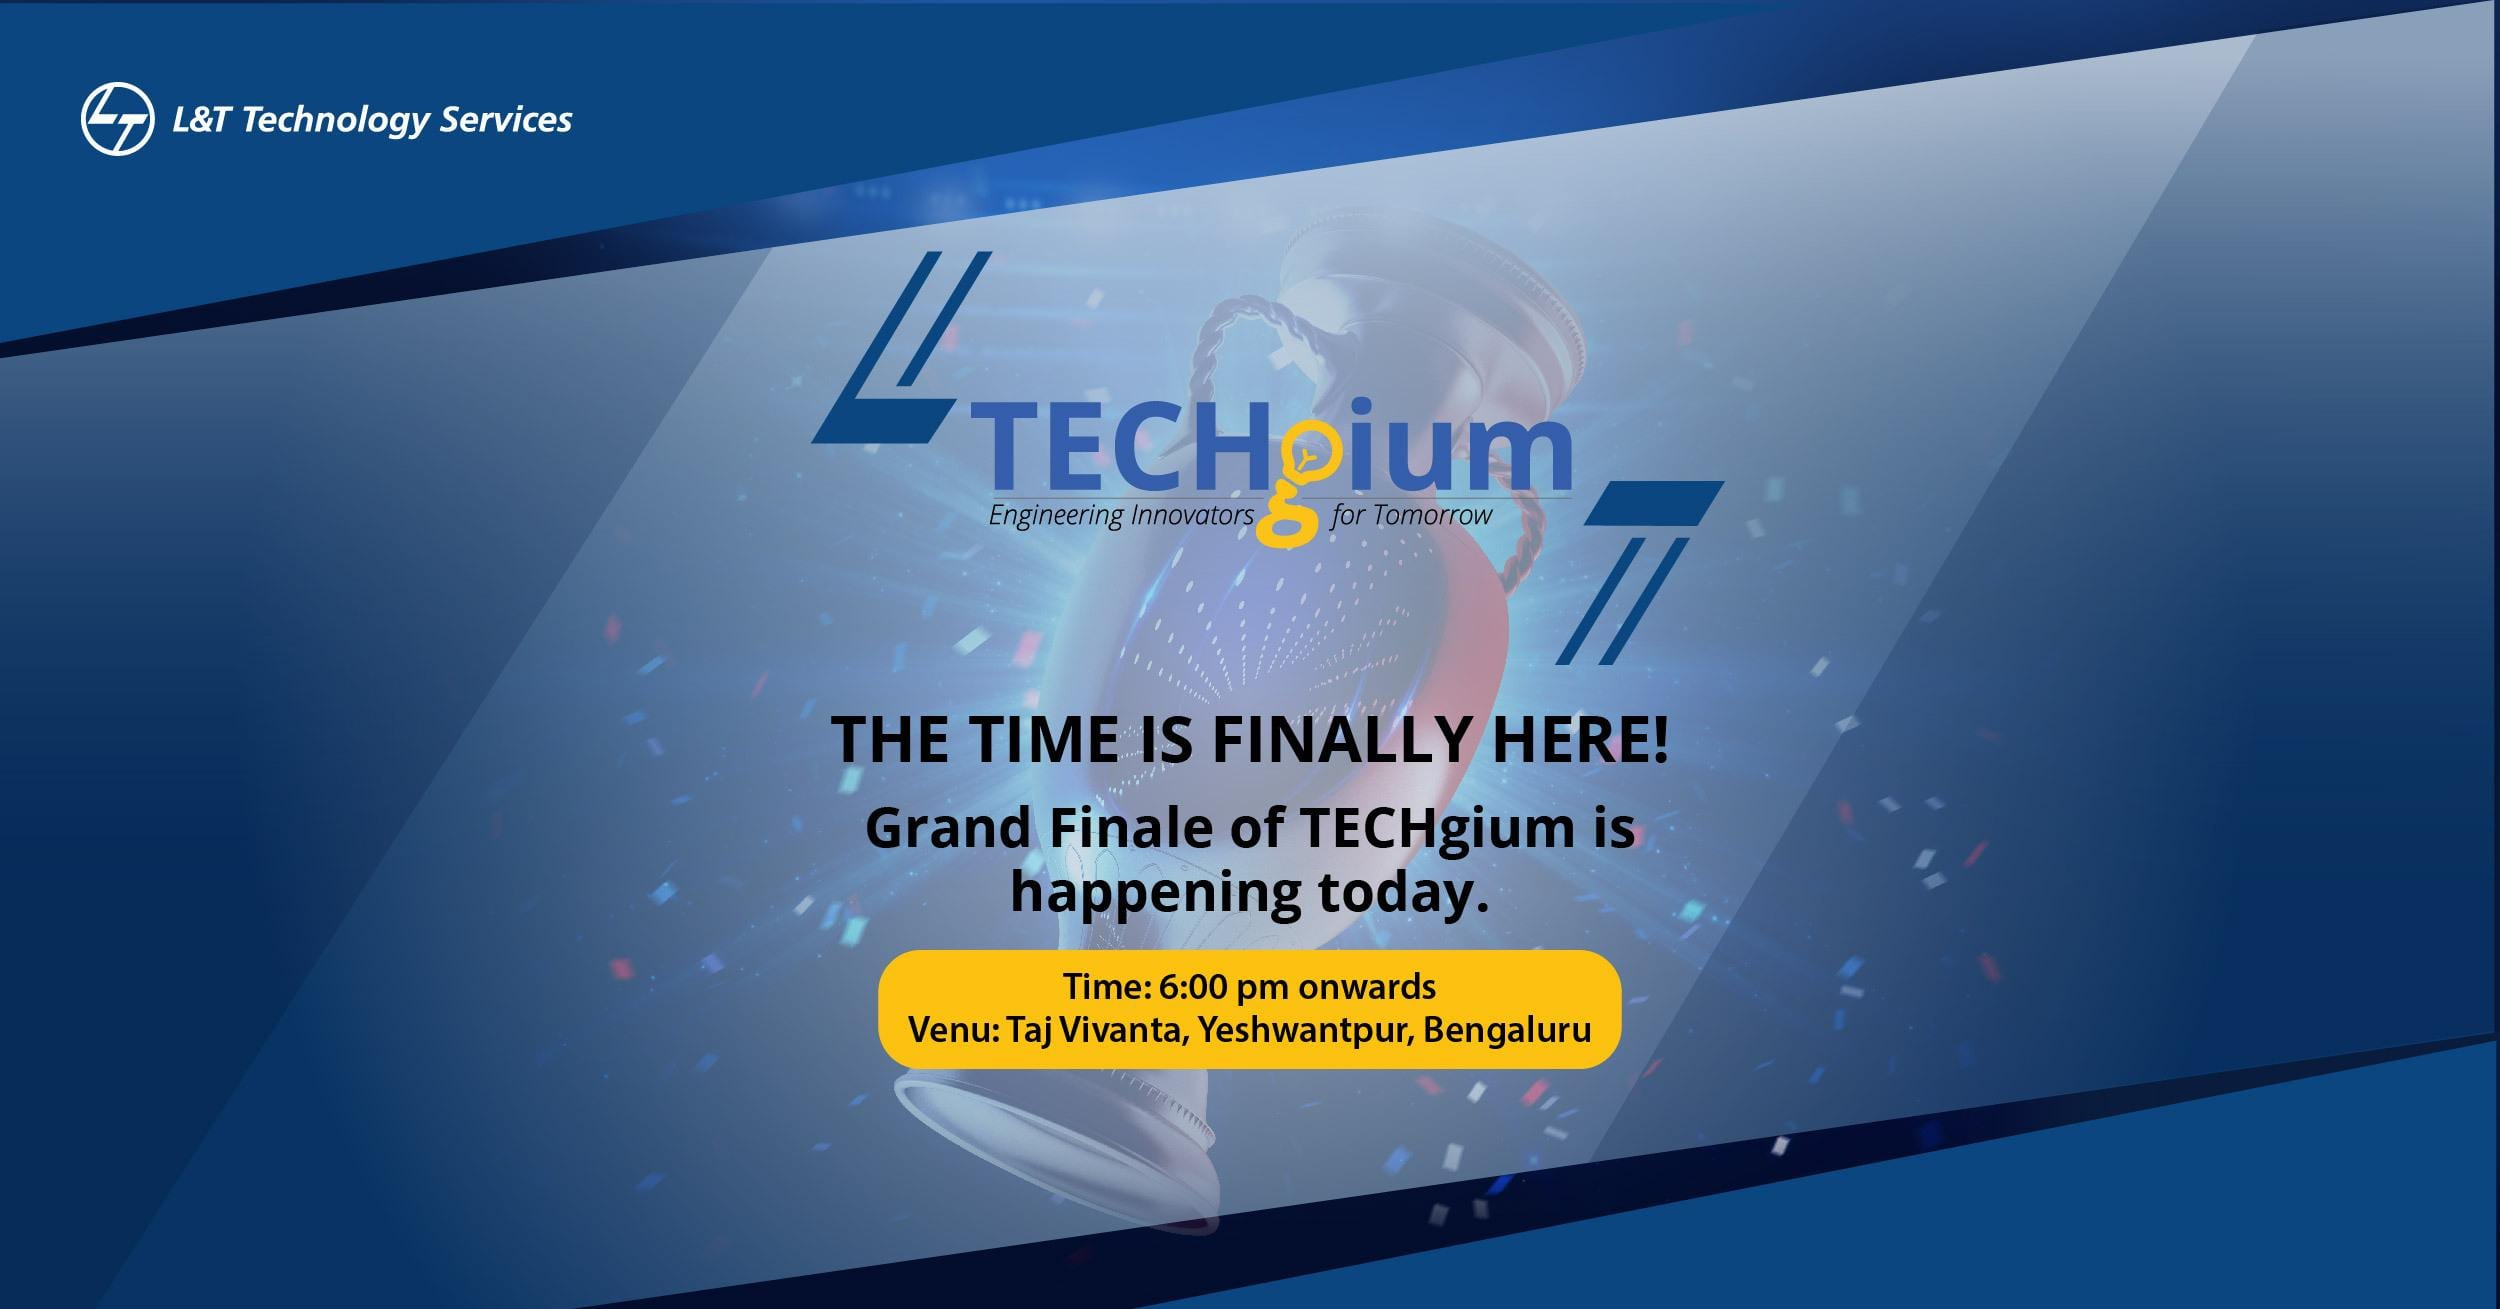 Coimbatore engineering students emerge first winners in L&T Technology Services' TECHgium Open Innovation National Competition